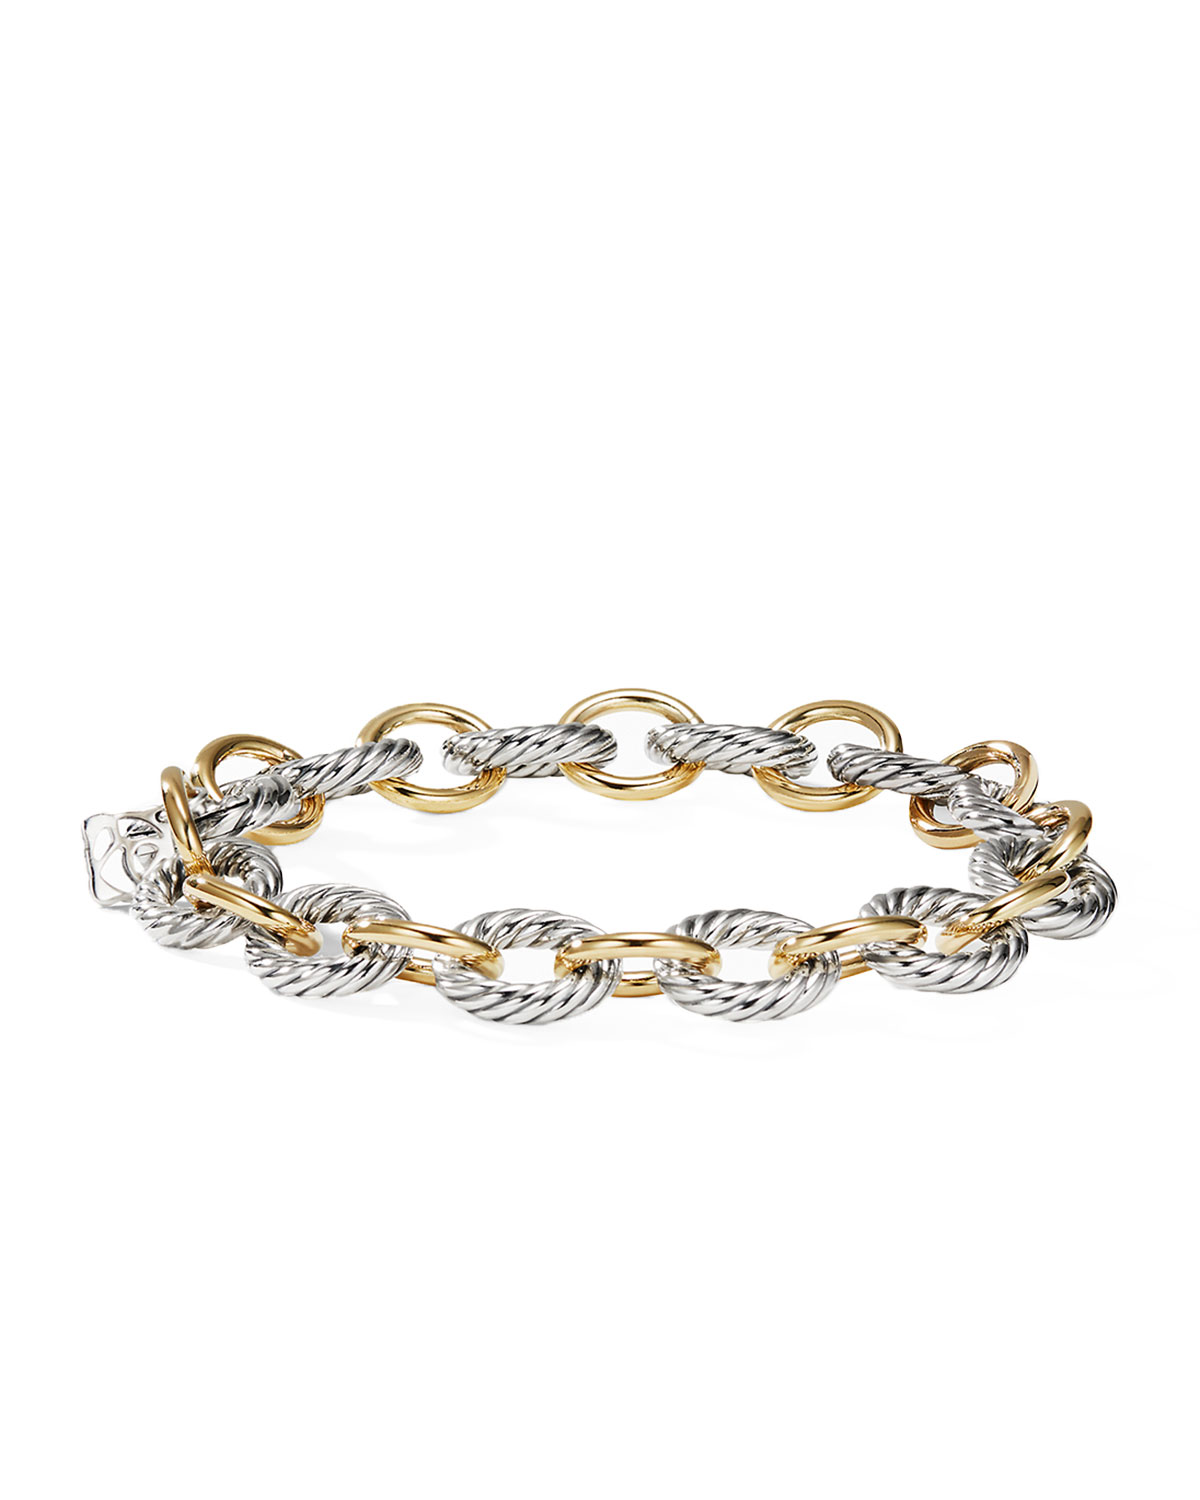 Oval Link Bracelet With Gold